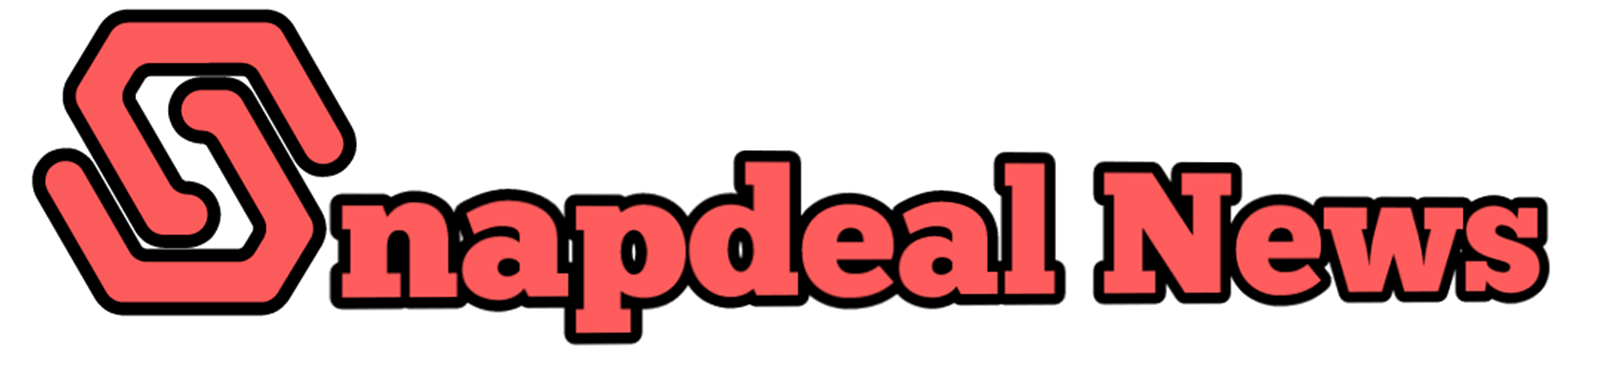 Snapdeal News  » Mobile Phone News, Reviews, Mobile Comparison & Technology News